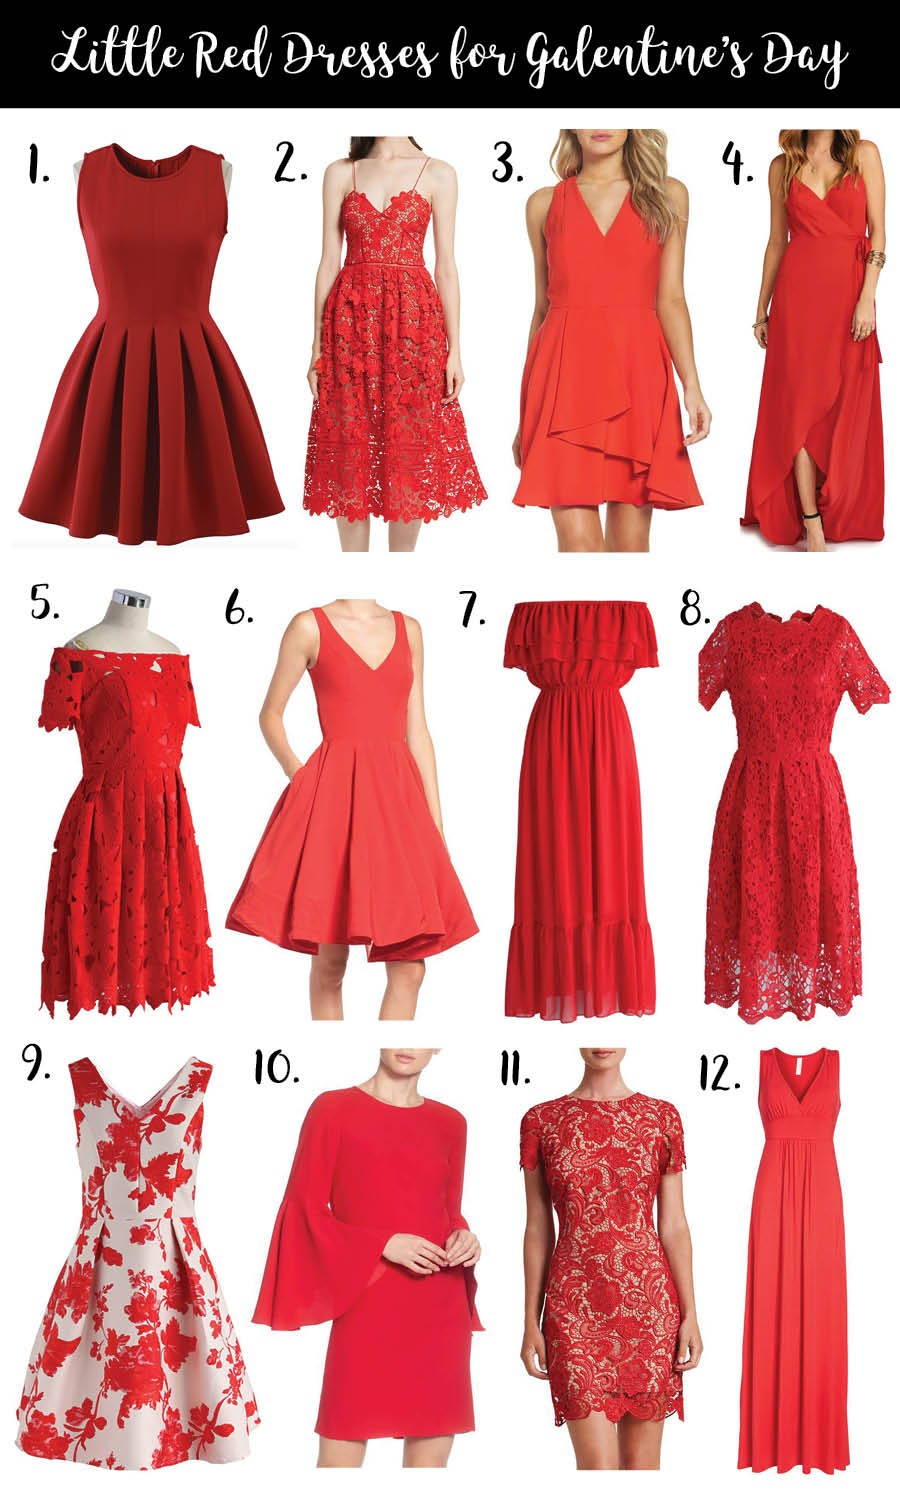 de685fd51 12 Little Red Dresses for Galentine s Day